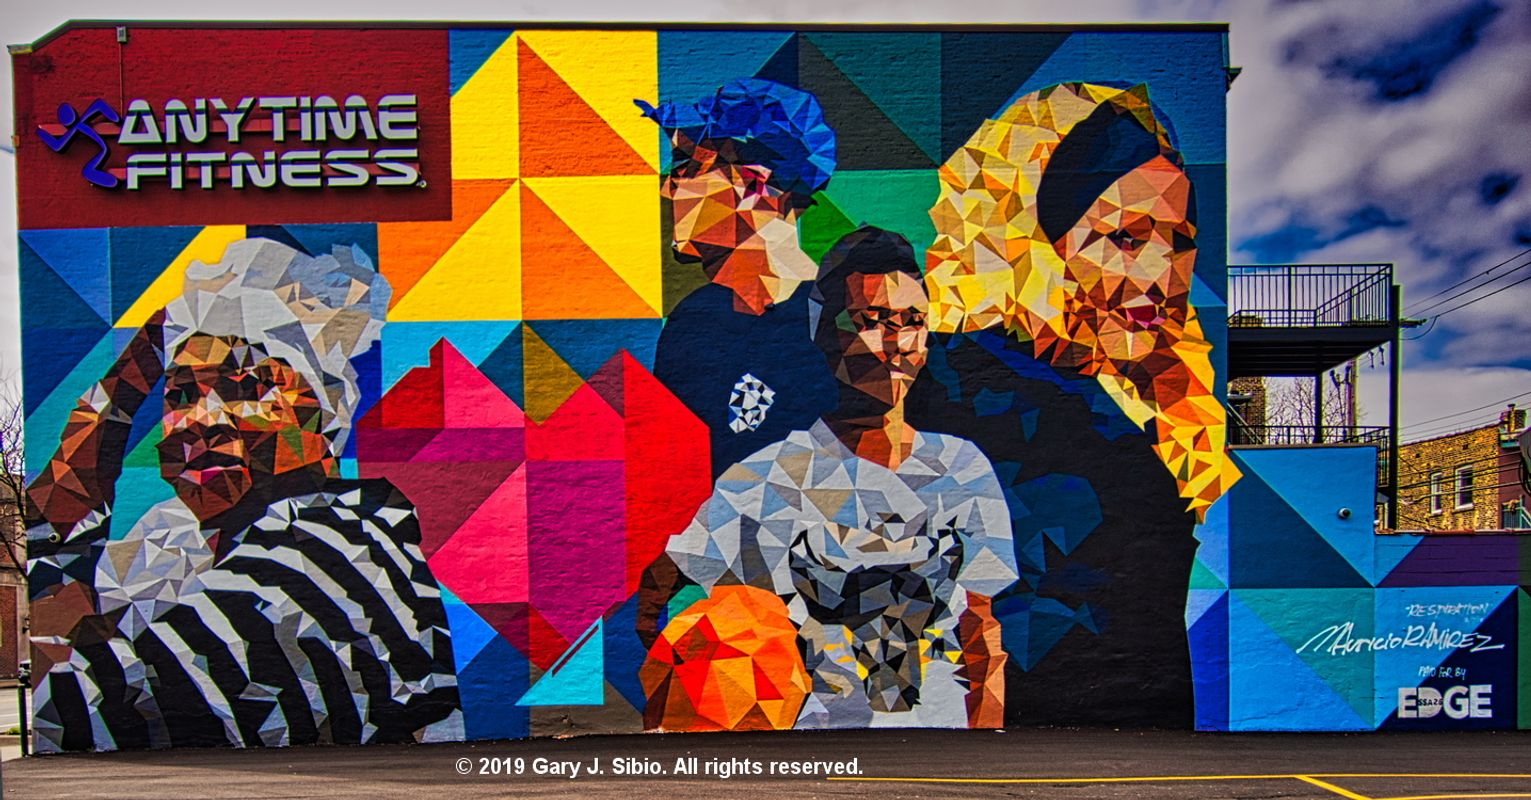 Mural on the Wall of Anytime Fitness, Chicago, Illinois (2019-04-05 14-15-02_01)